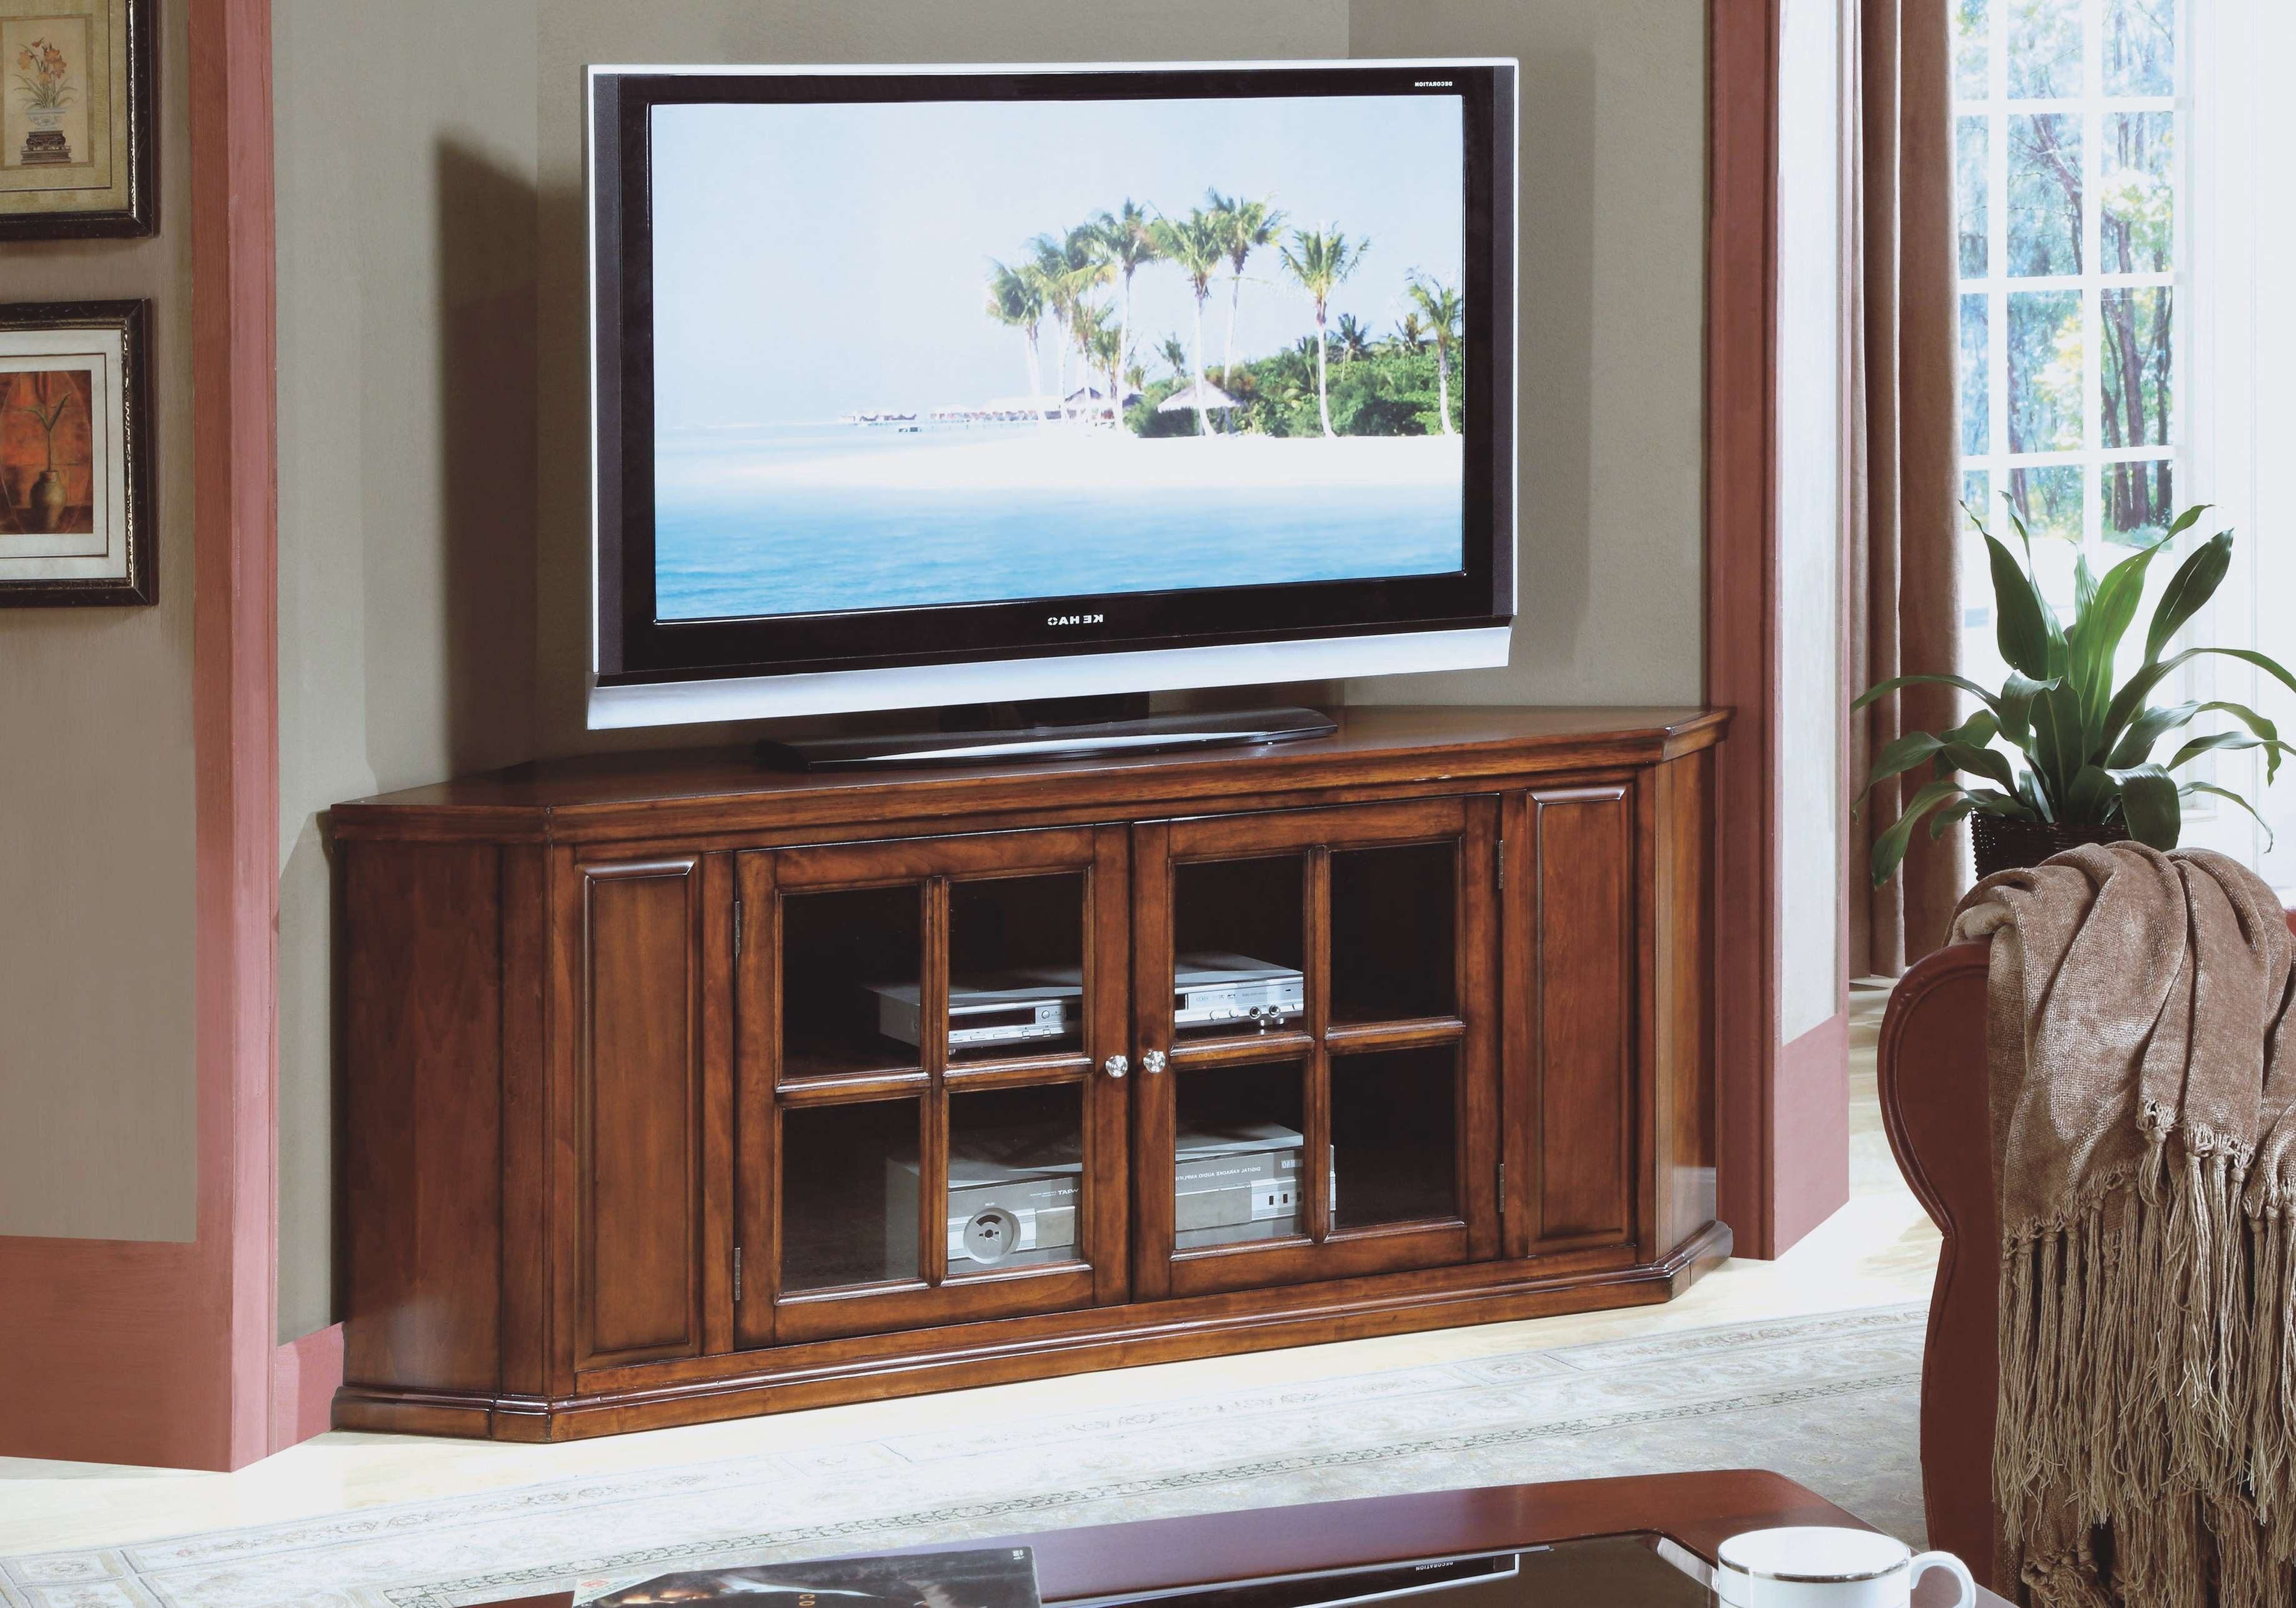 Oak Tv Cabinet With Doors Choice Image – Doors Design Ideas In Cherry Wood Tv Cabinets (Gallery 13 of 20)